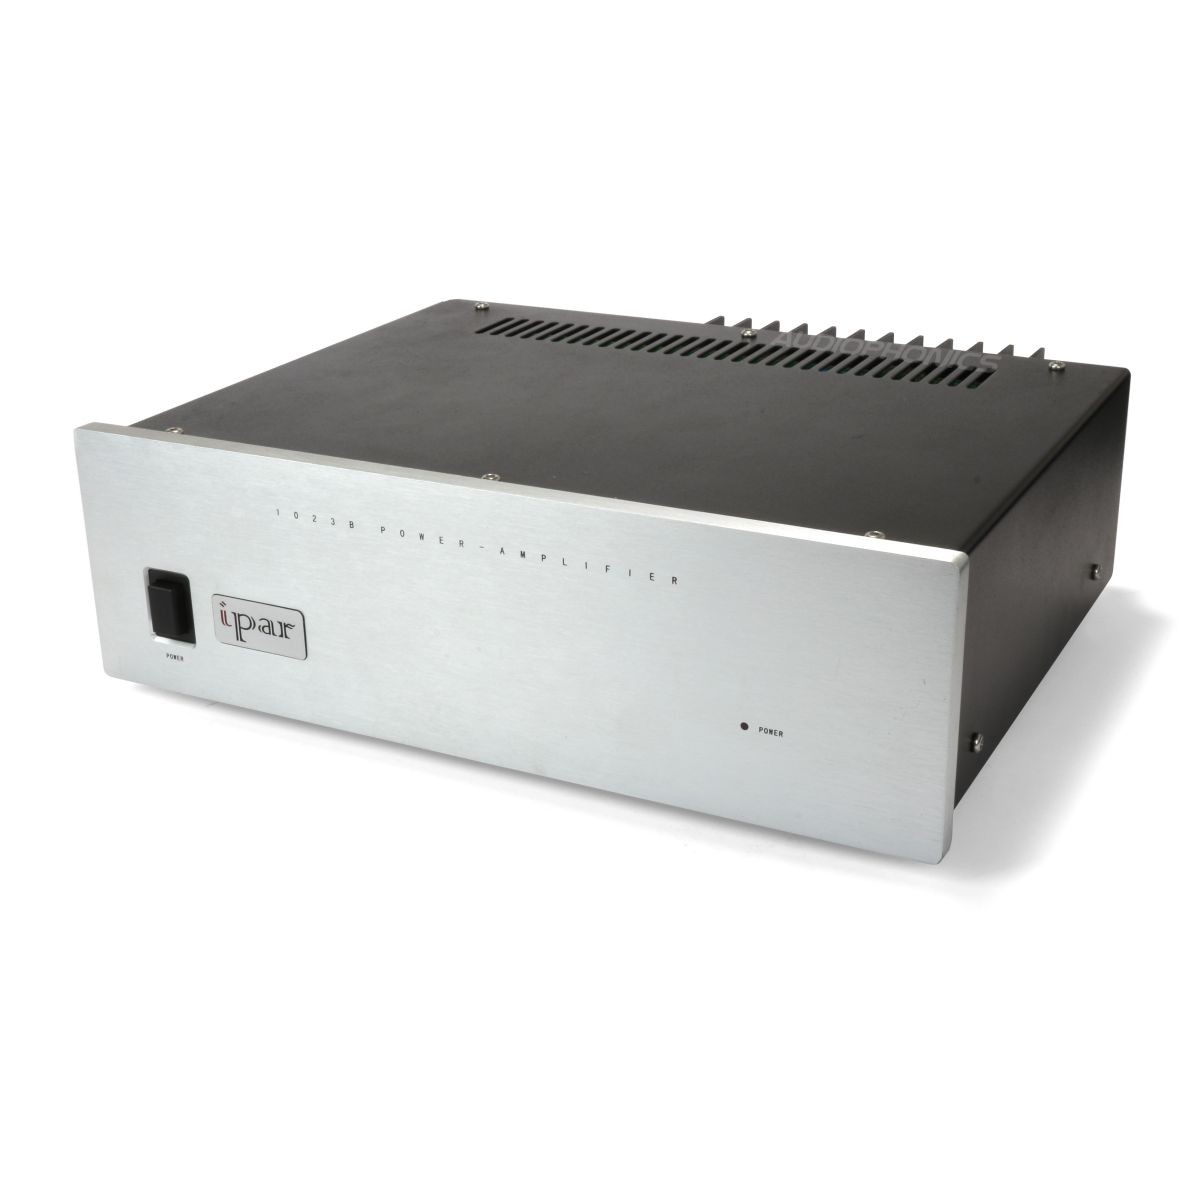 IPAR 1023B power amplifier Class A/B LM317 2x50W / 8 Ohm